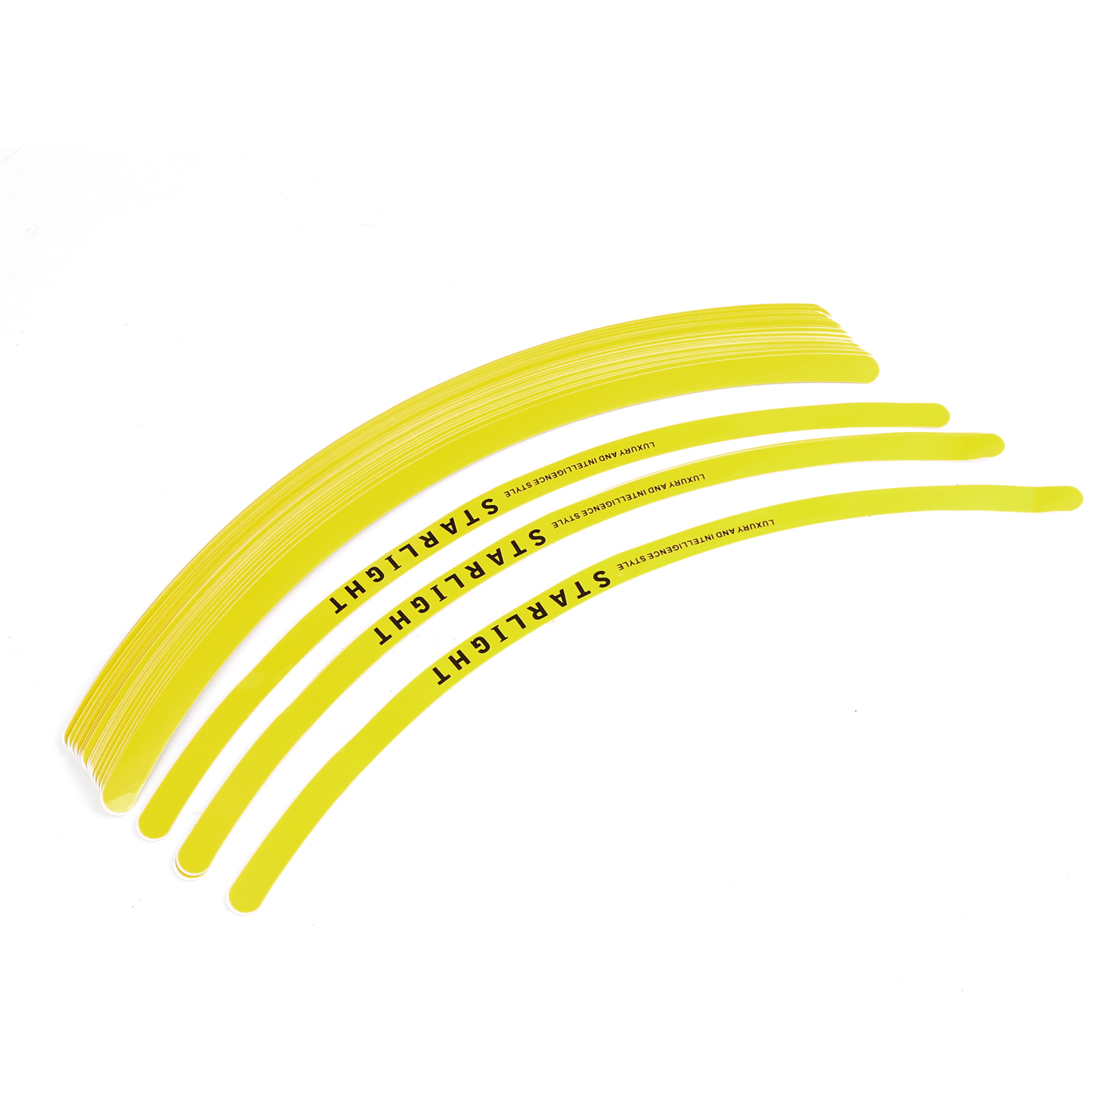 28 Pieces Yellow Vinyl Rim Stripes Tape Decal Stickers for Motorcycle Car